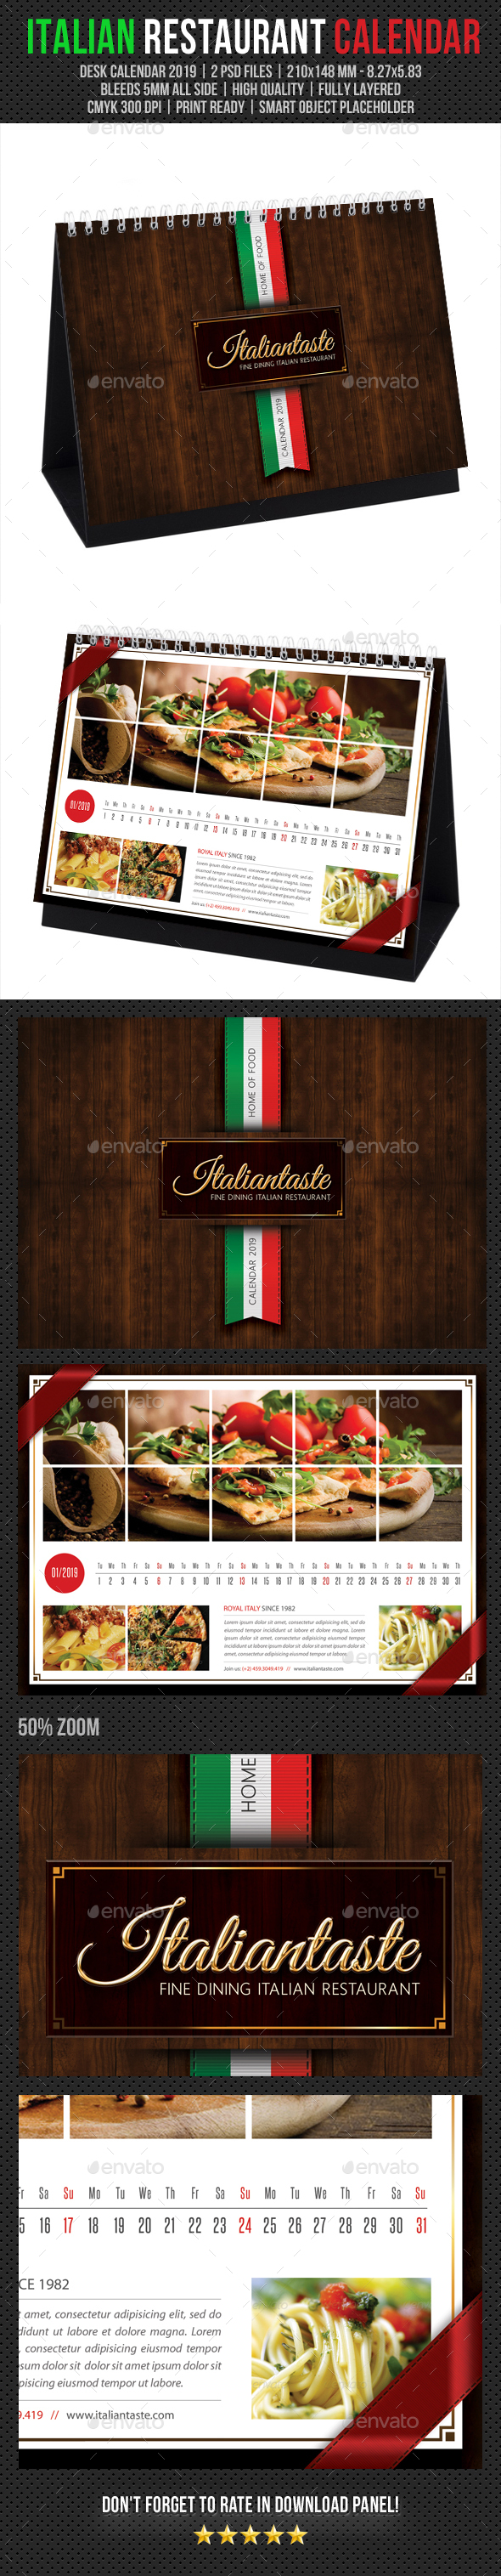 Italian Restaurant Desk Calendar 2019 - Calendars Stationery